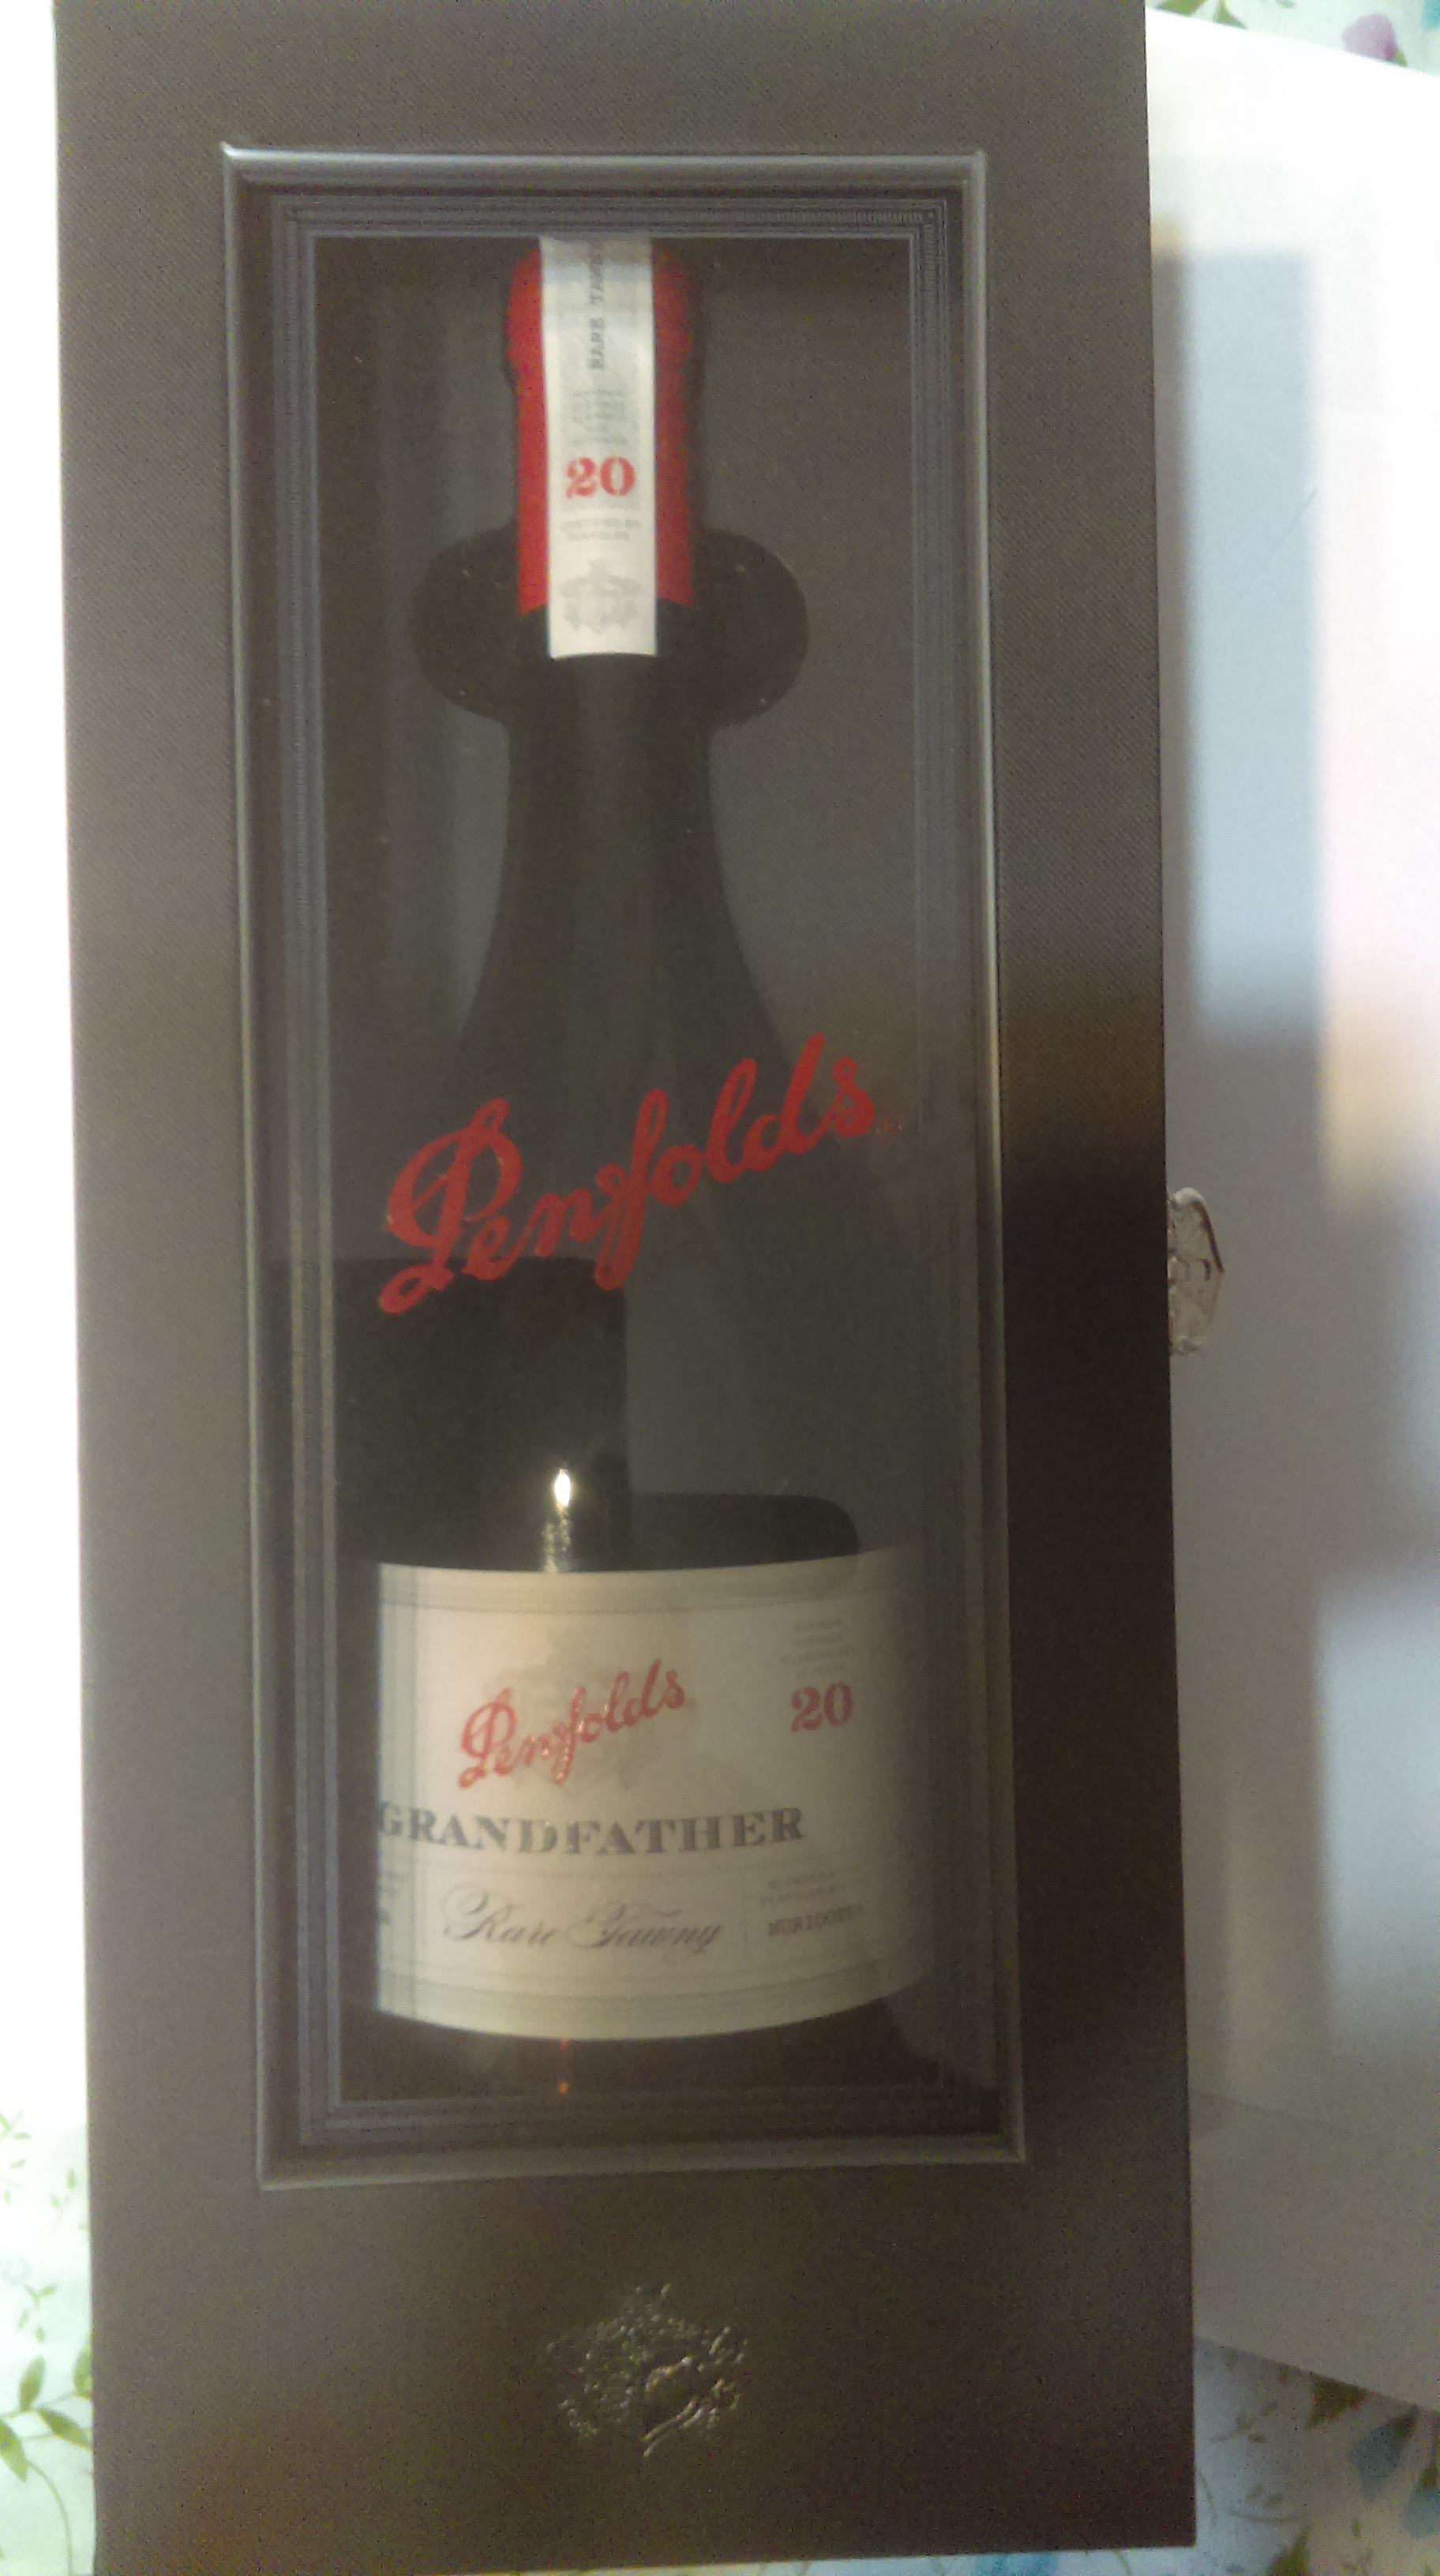 penfolds grandfather 1